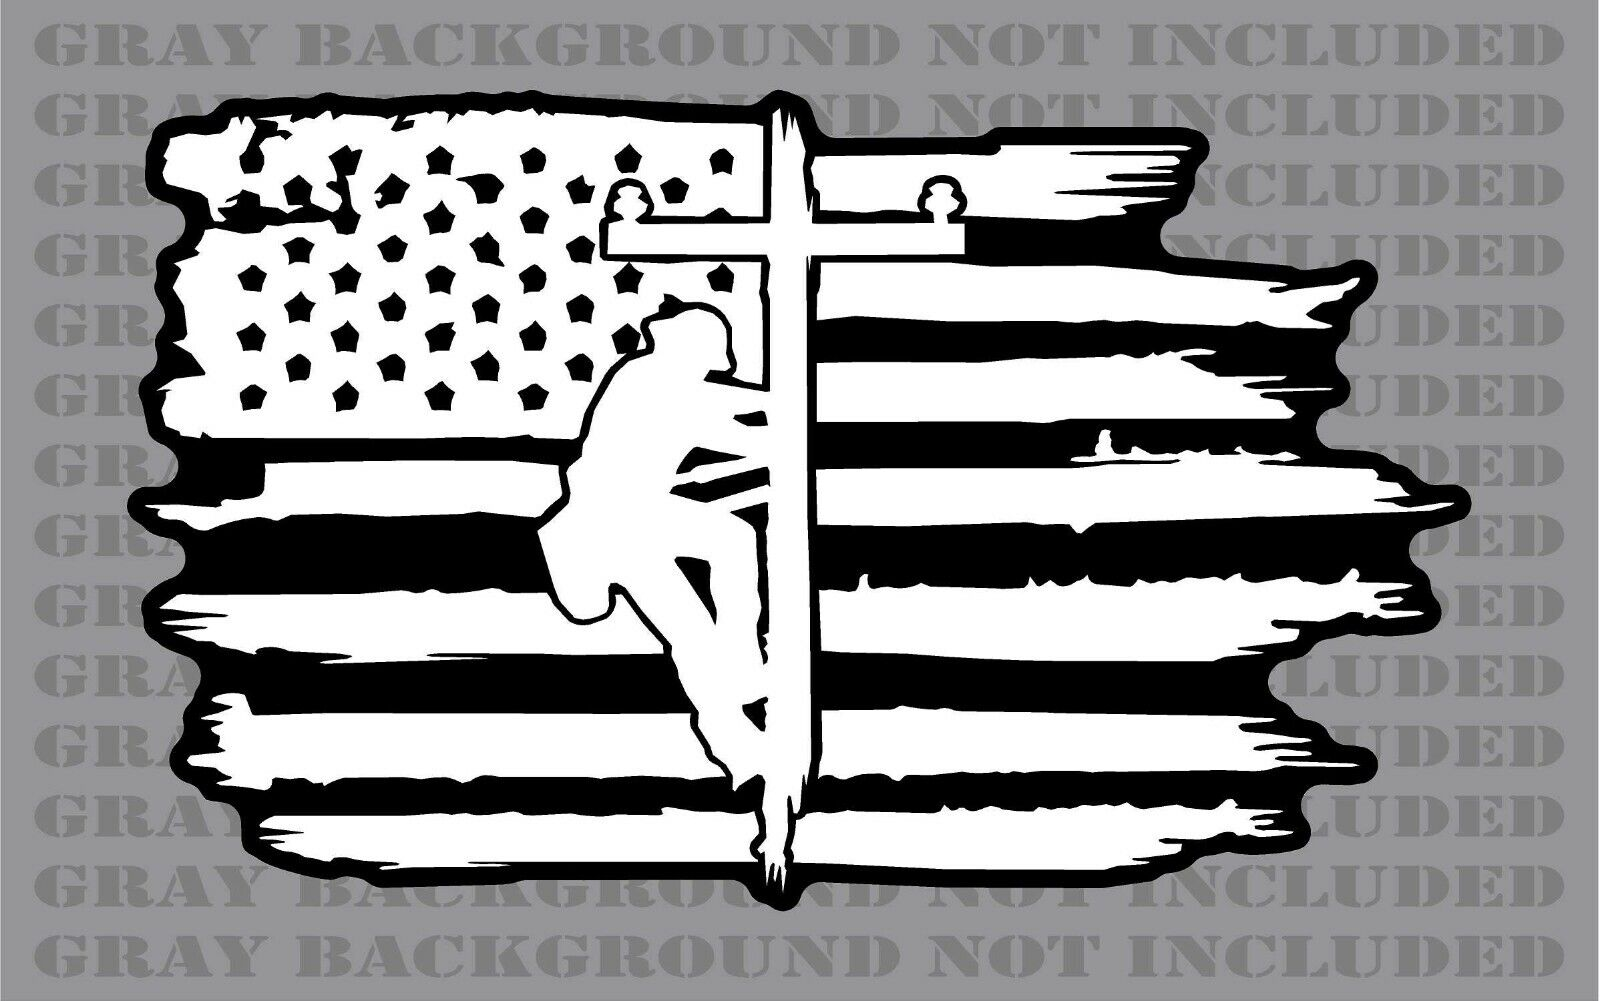 Camouflage Lineman Linesman Electrical Power Line American flag sticker decal